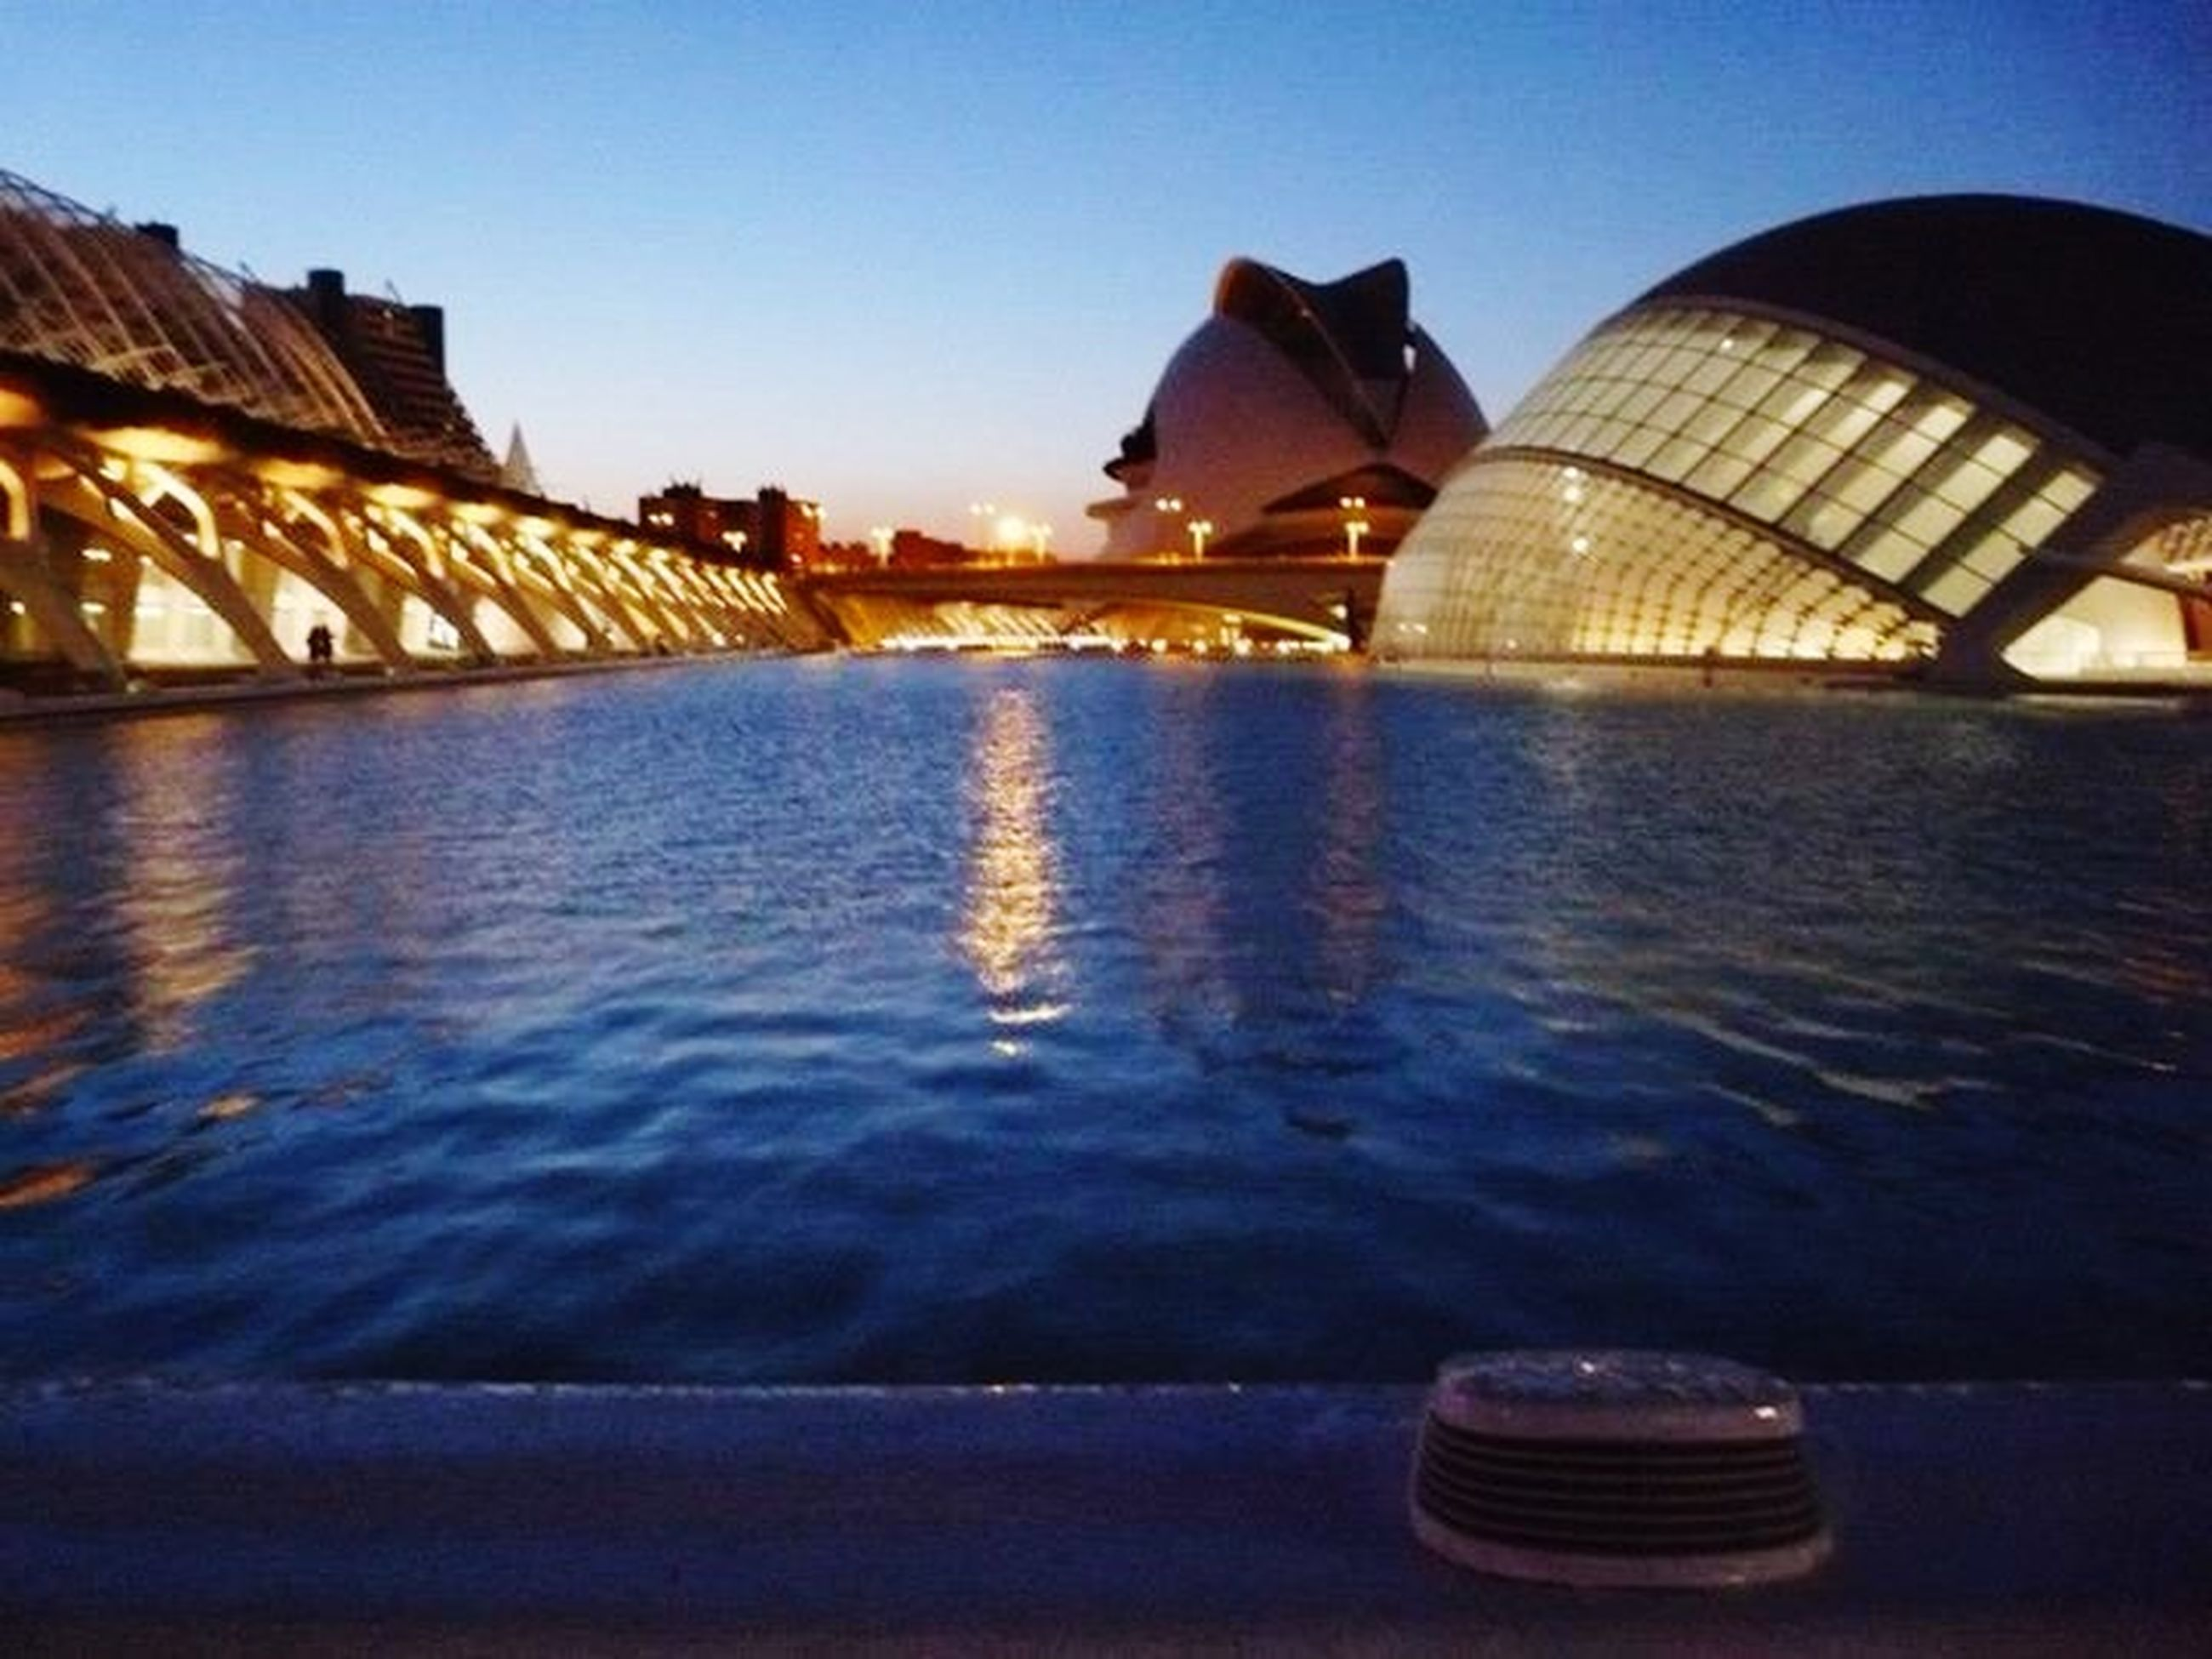 water, architecture, built structure, reflection, waterfront, building exterior, illuminated, clear sky, river, blue, city, transportation, travel destinations, sky, famous place, rippled, outdoors, tourism, travel, bridge - man made structure